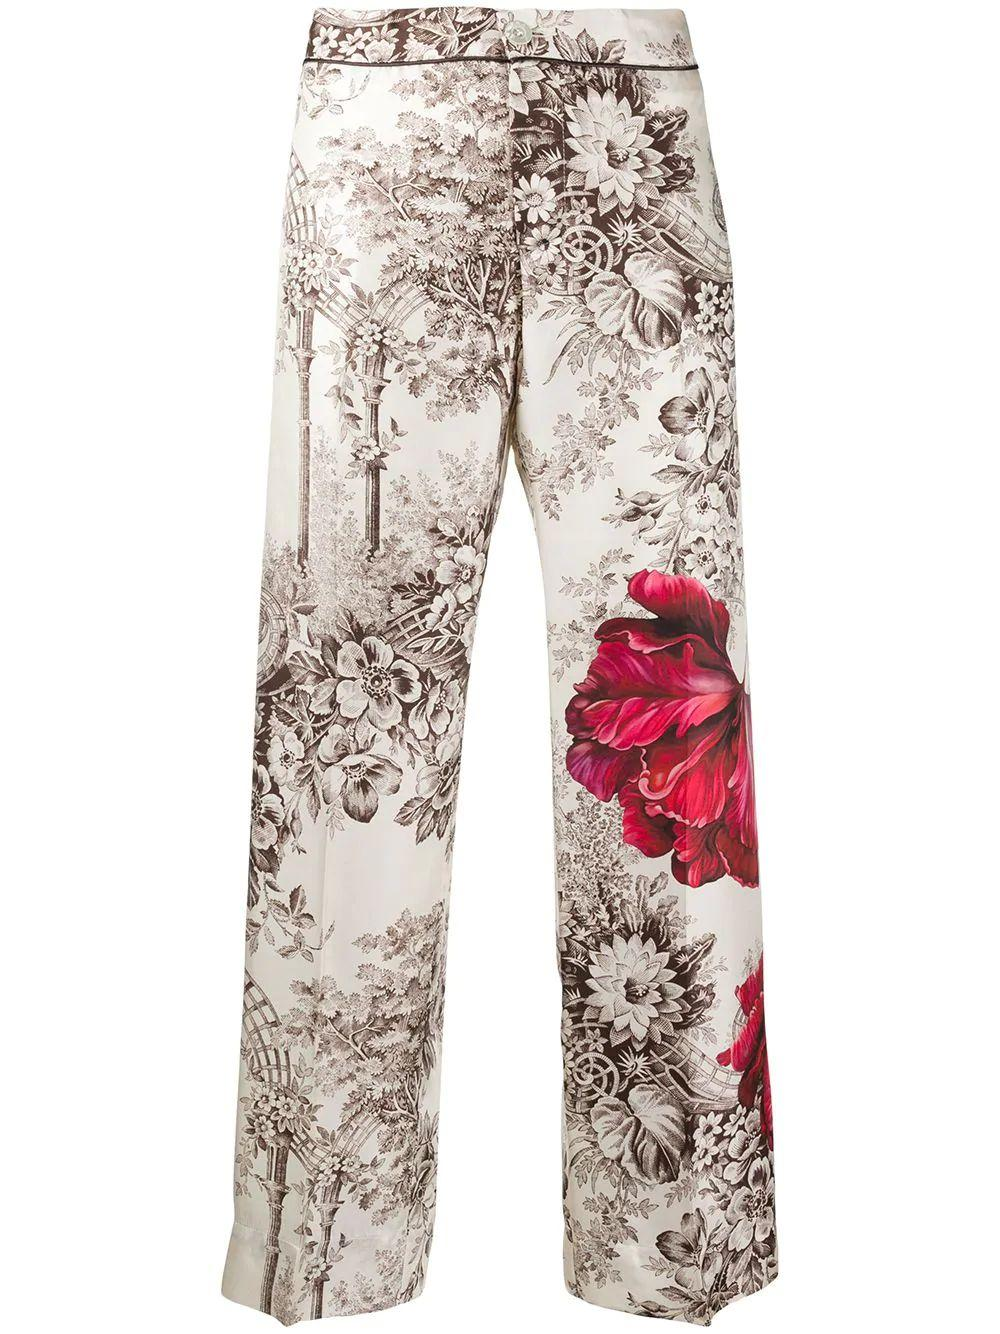 Flower Printed Piped Pants